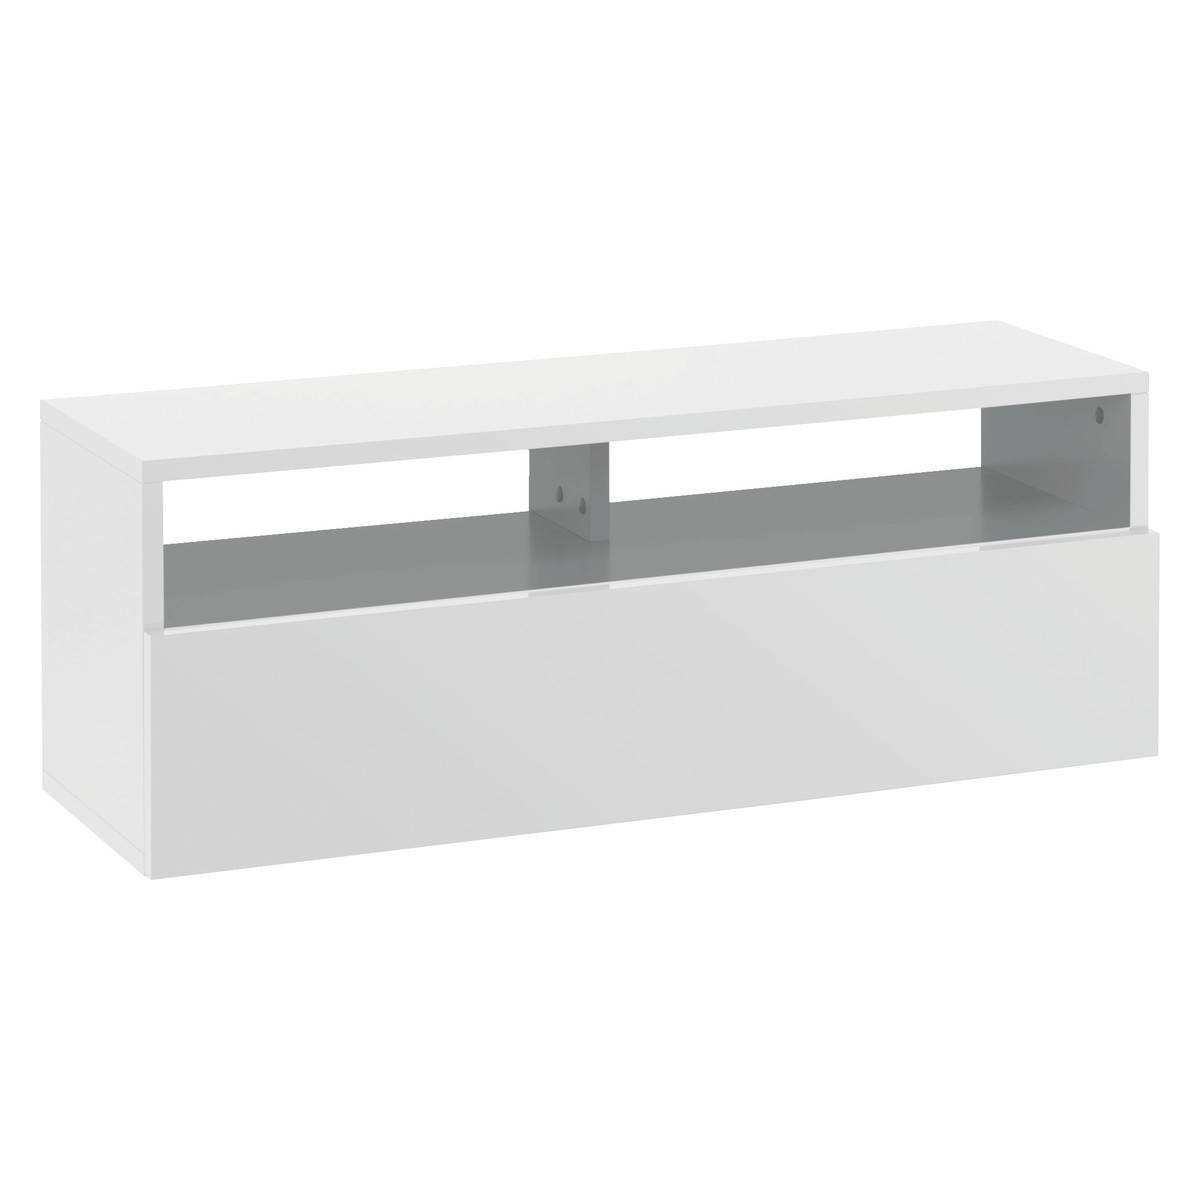 Tv Units – Our Pick Of The Best | Ideal Home With Corner Tv Unit White Gloss (View 11 of 15)